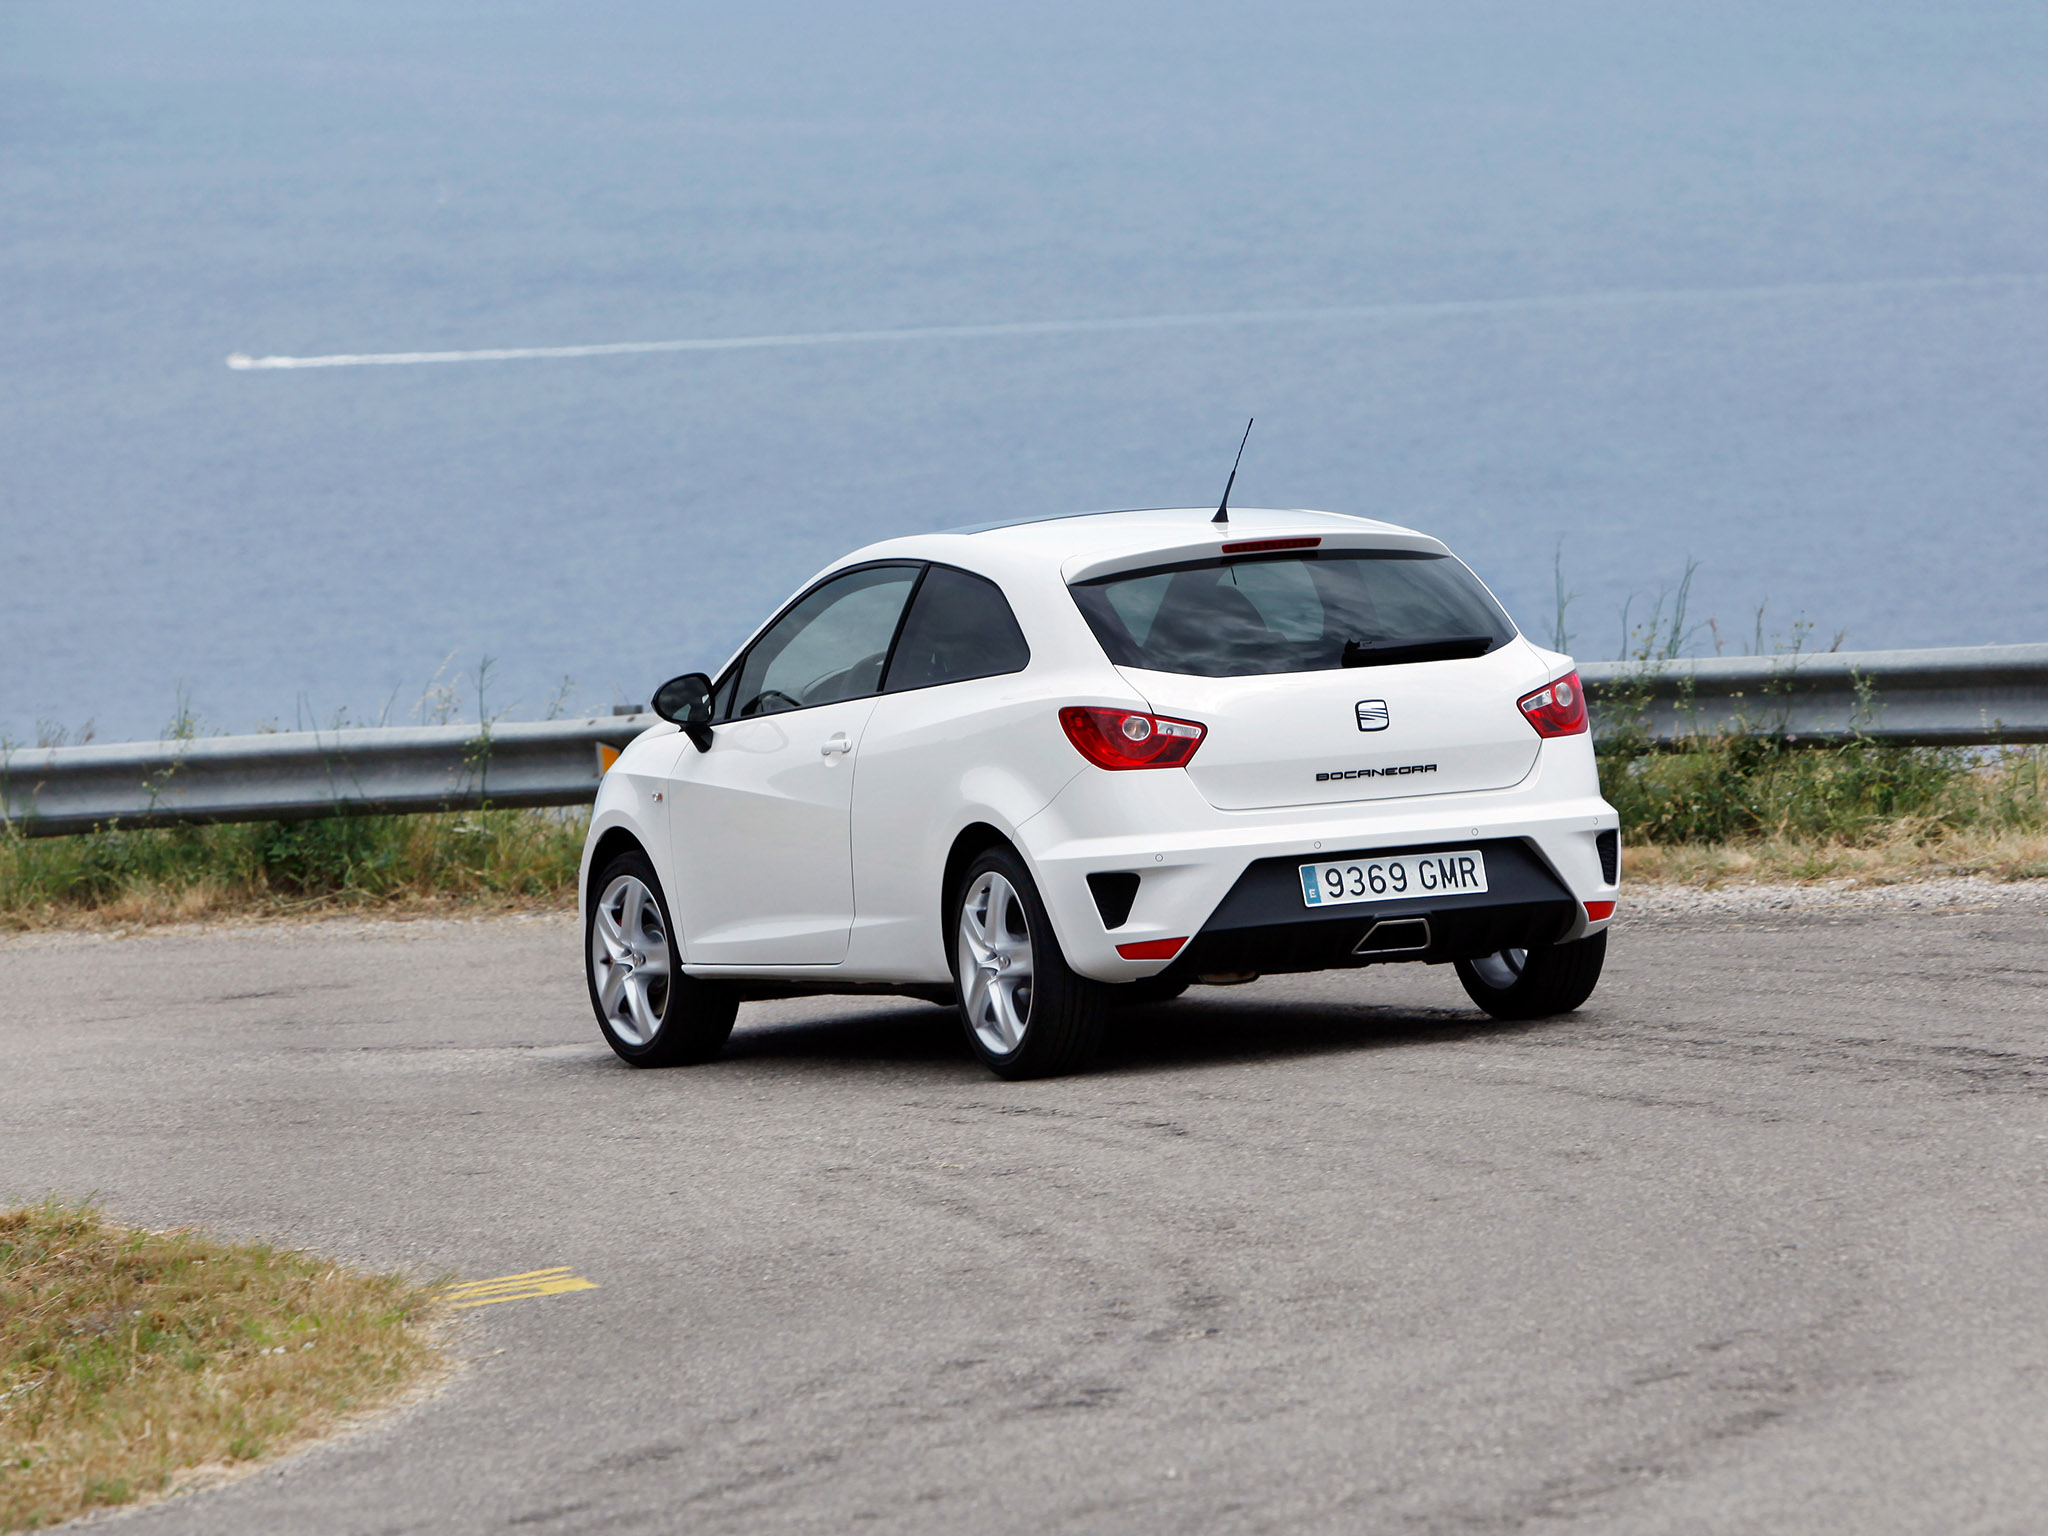 seat ibiza bocanegra 2009 seat ibiza bocanegra 2009 photo 06 car in pictures car photo gallery. Black Bedroom Furniture Sets. Home Design Ideas